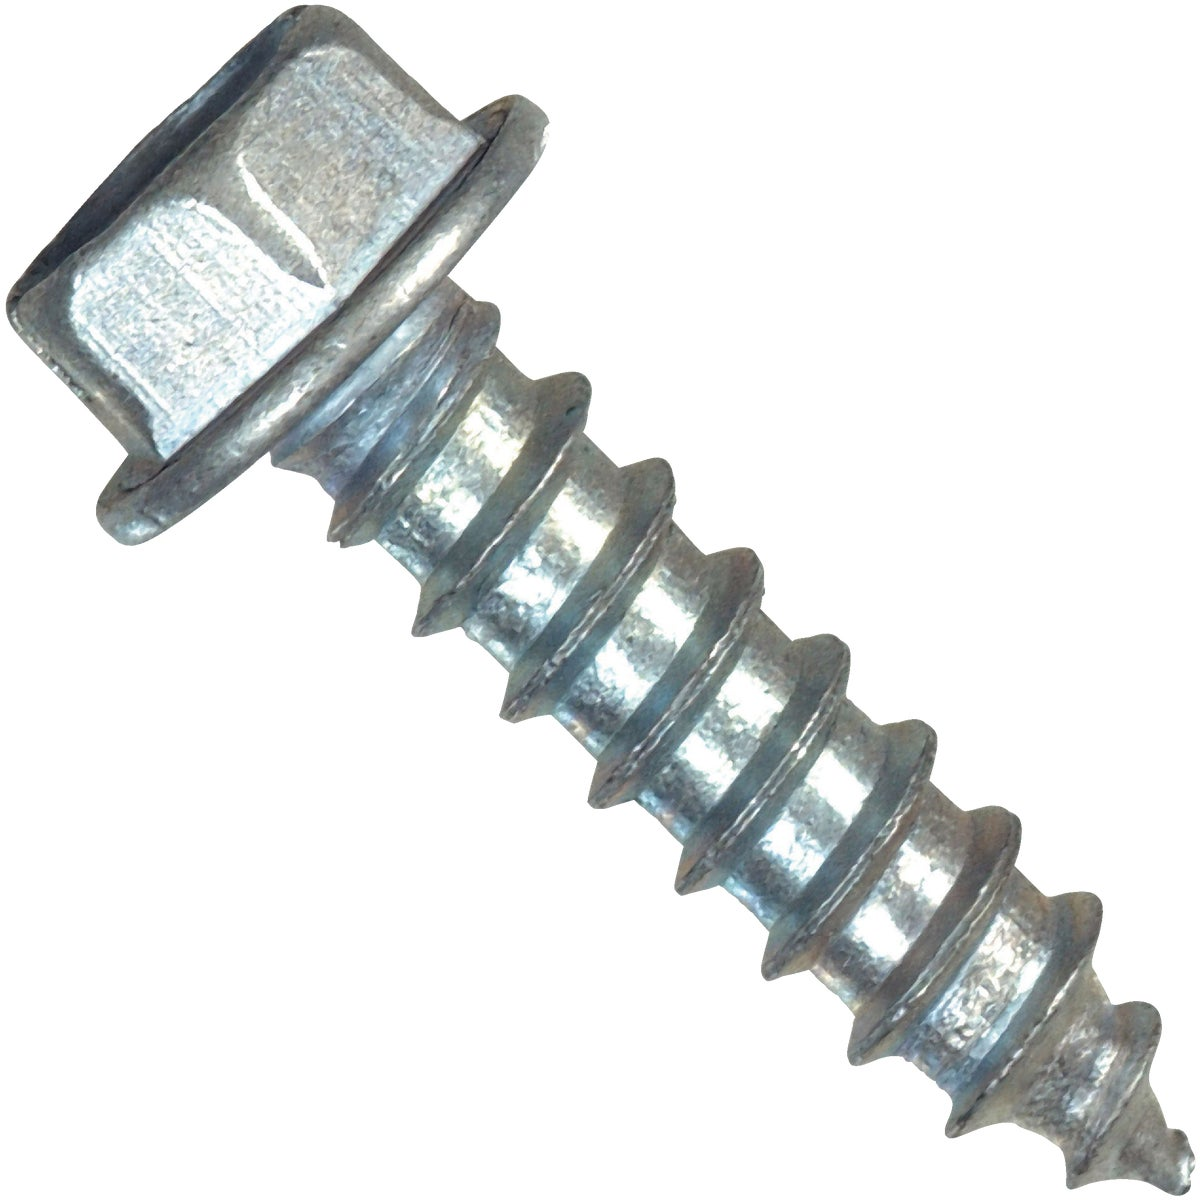 1/4X1-1/2 HWH S MT SCREW - 70340 by Hillman Fastener